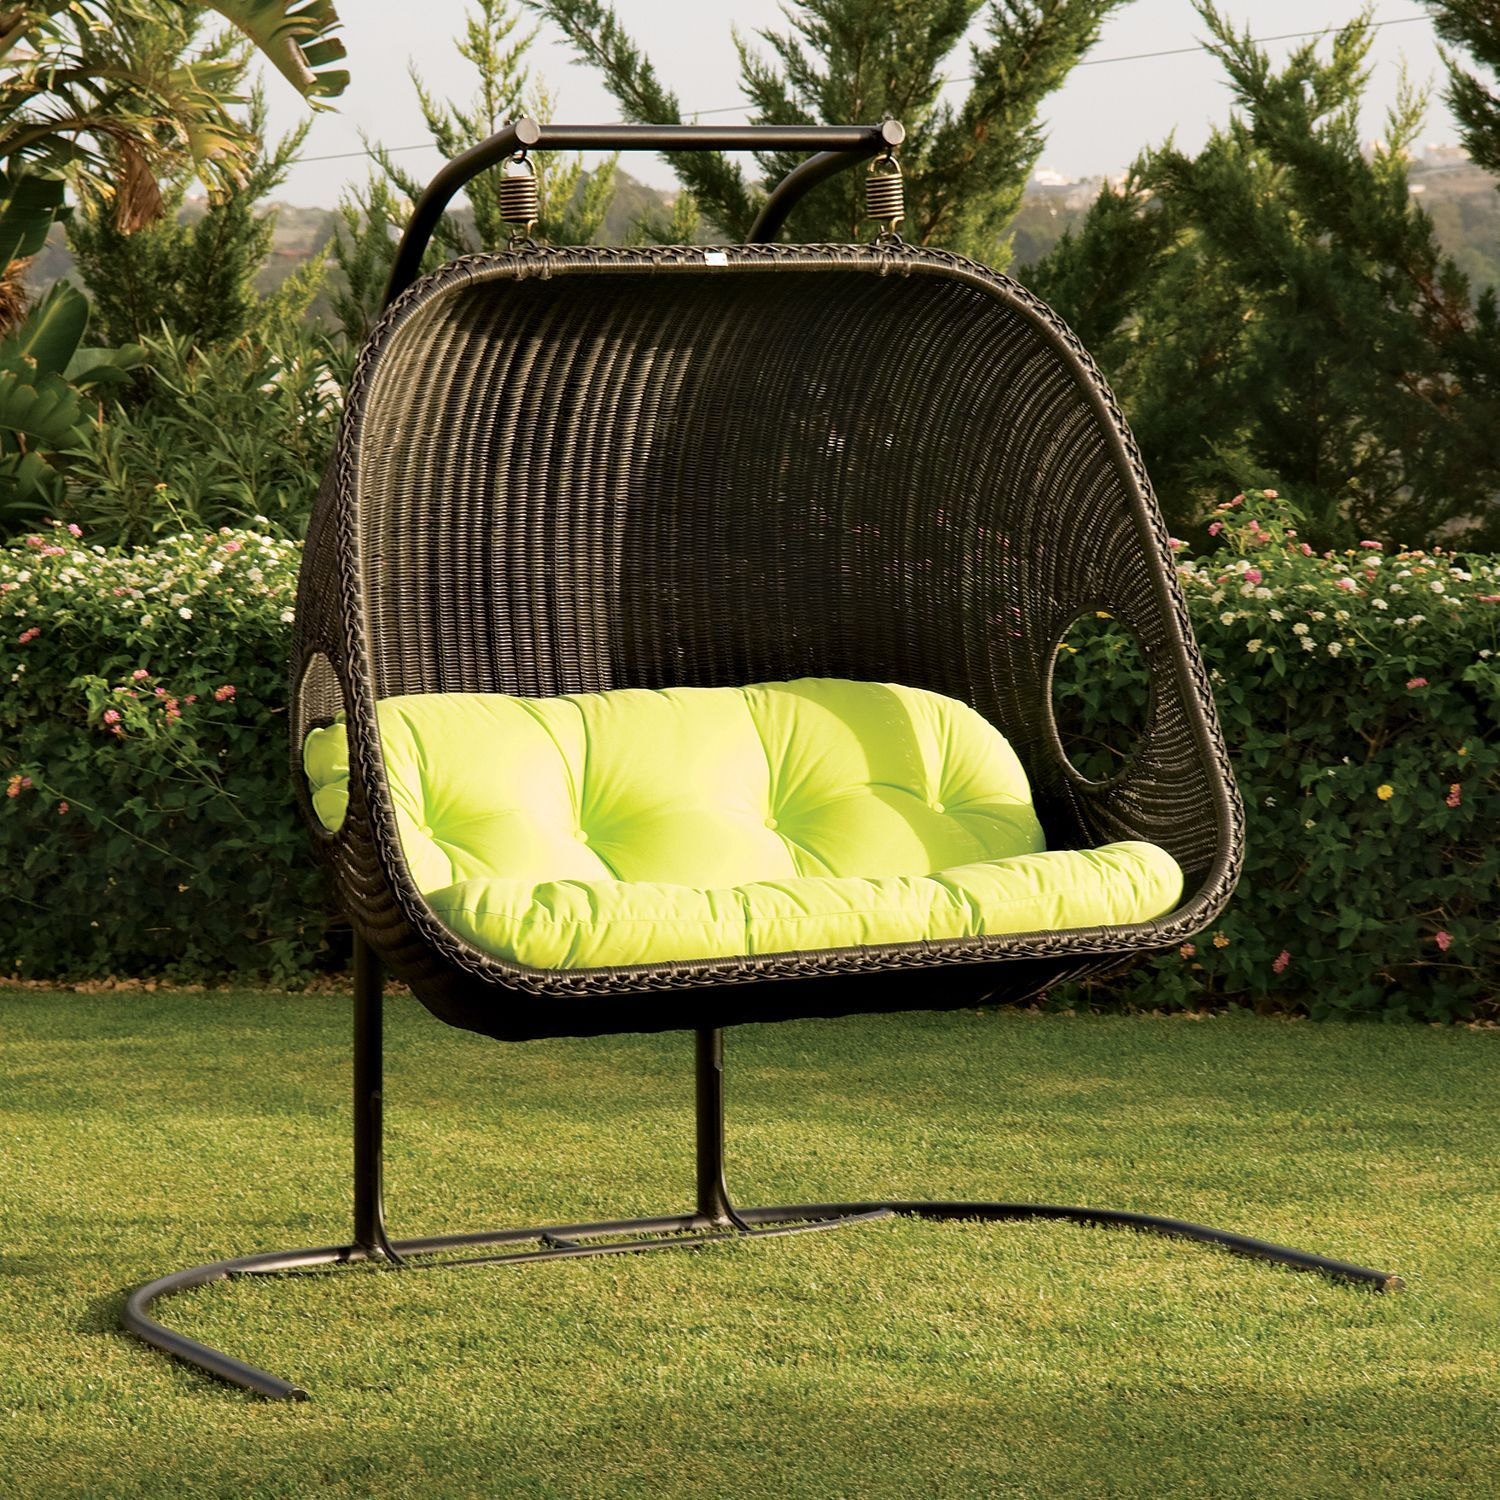 swing seat nz used commode chair cool frontyard exterior design with black rattan hanging